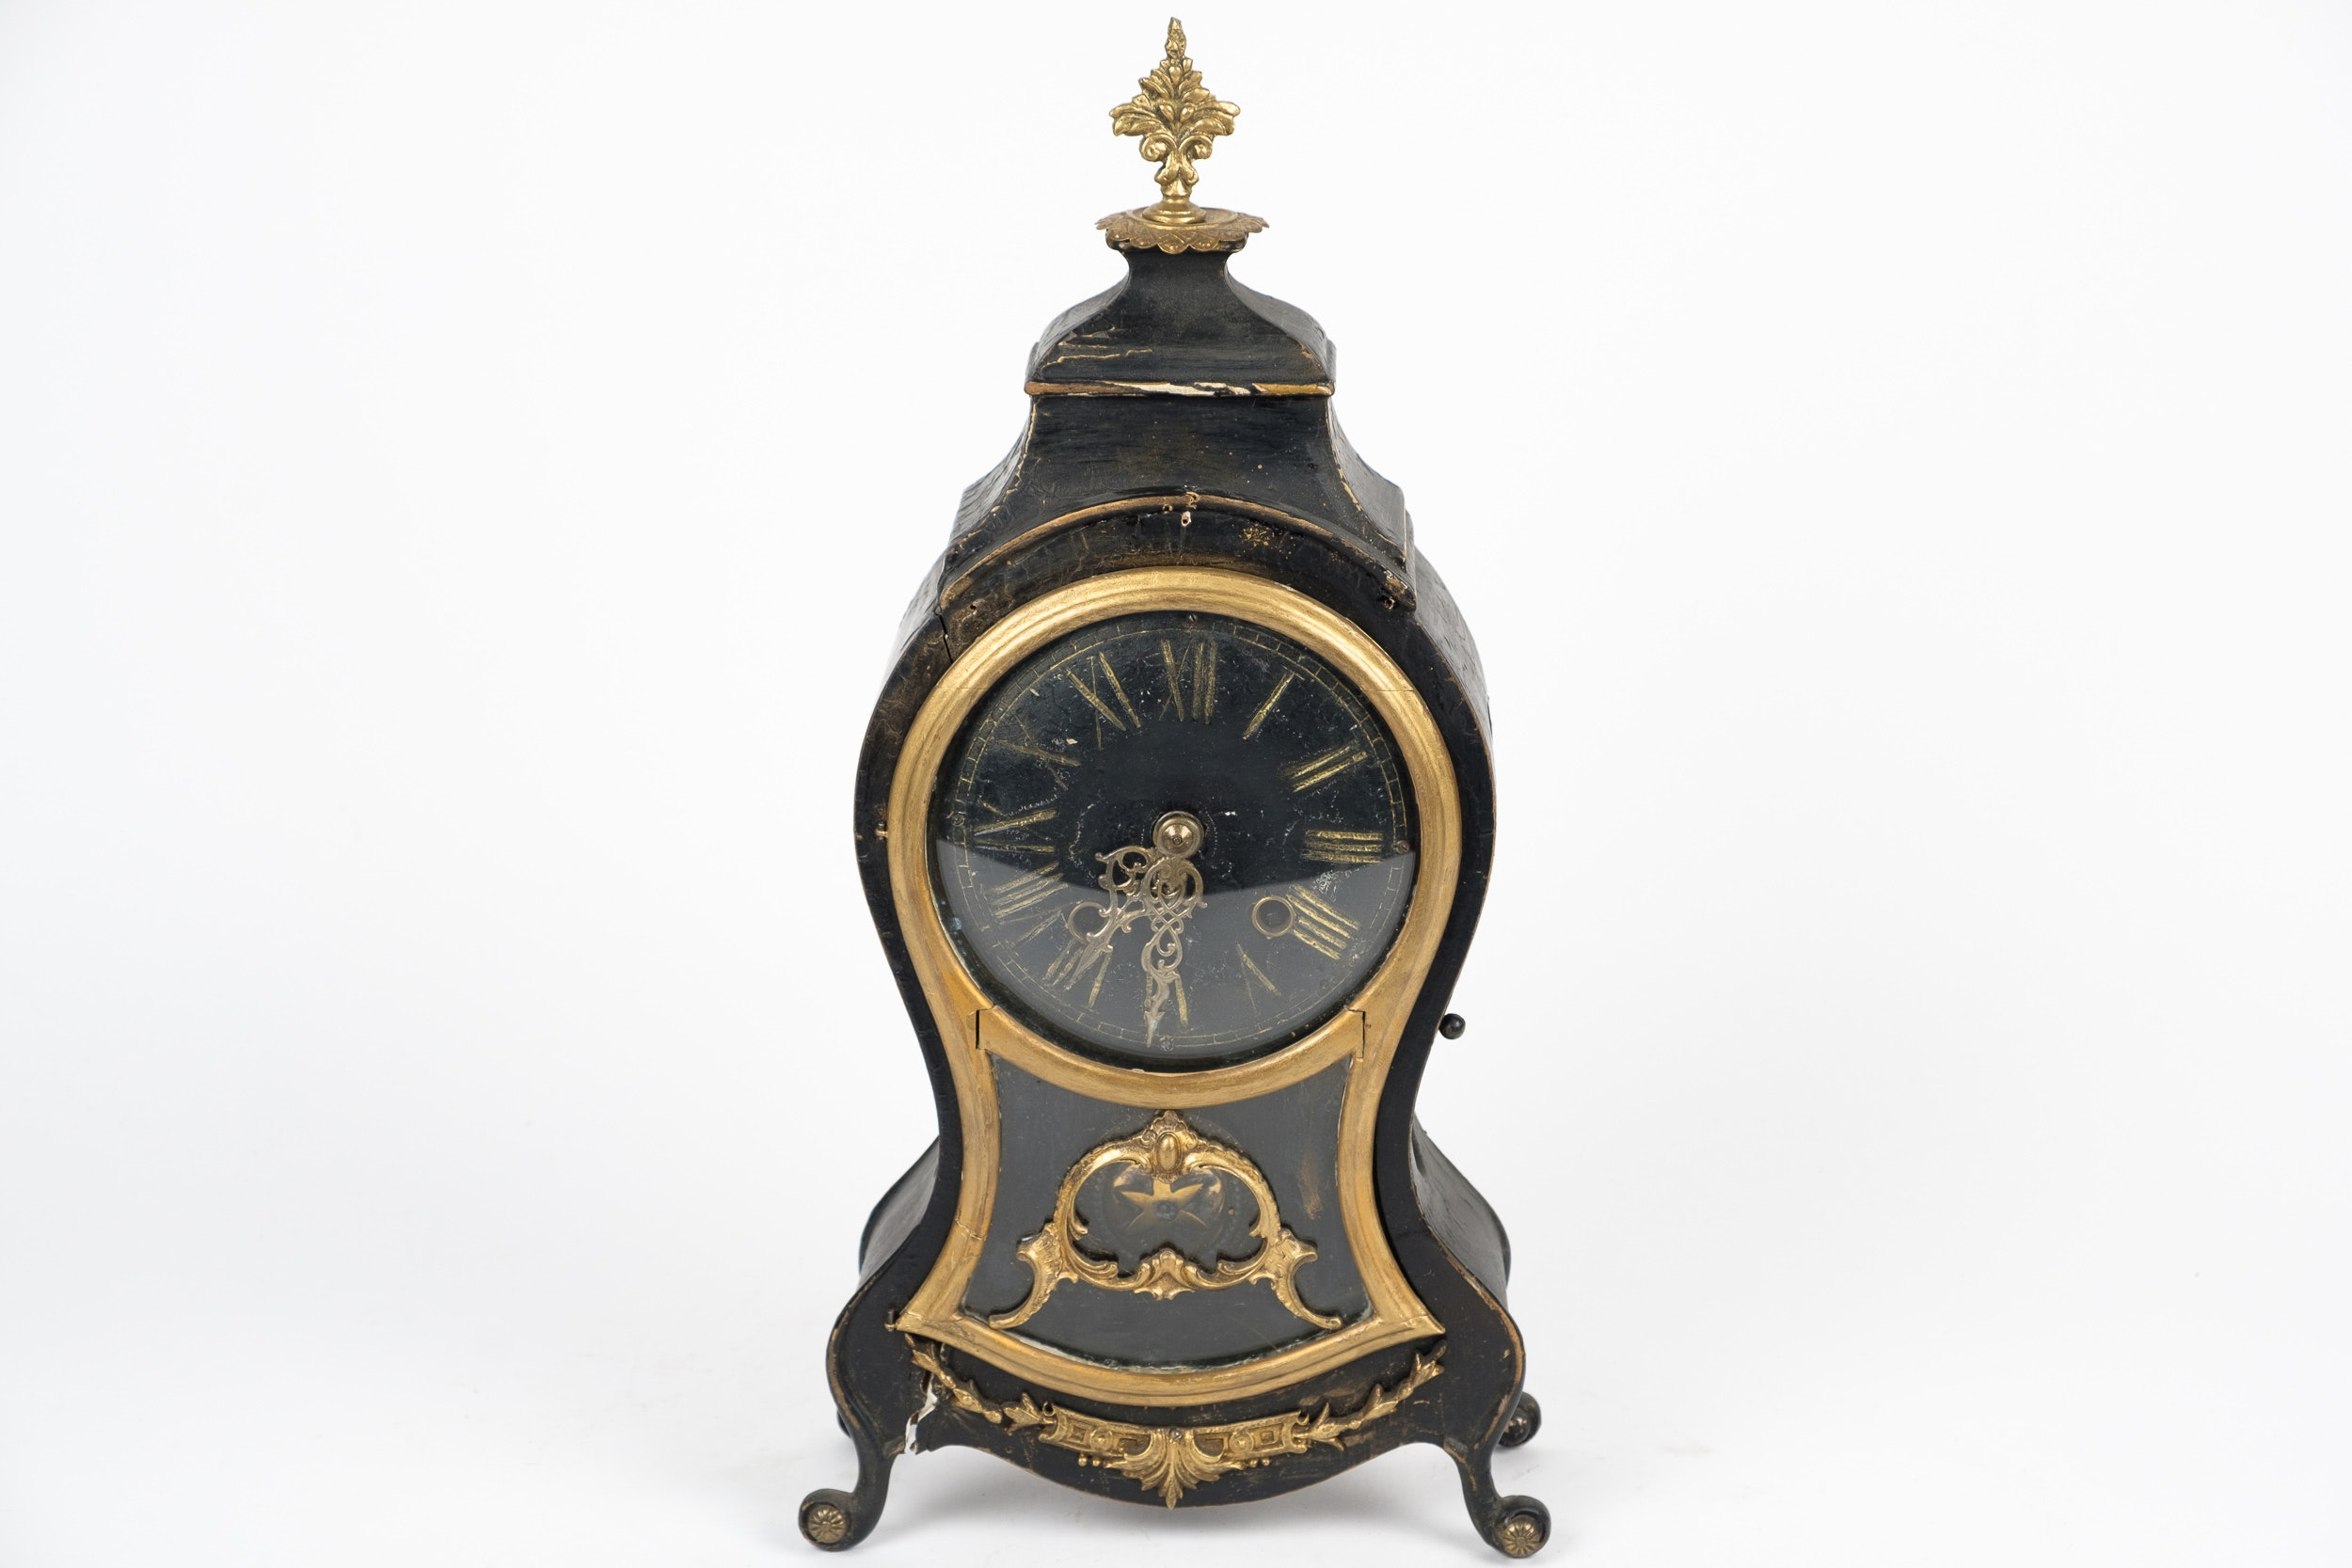 Vintage French Style Mantel Clock